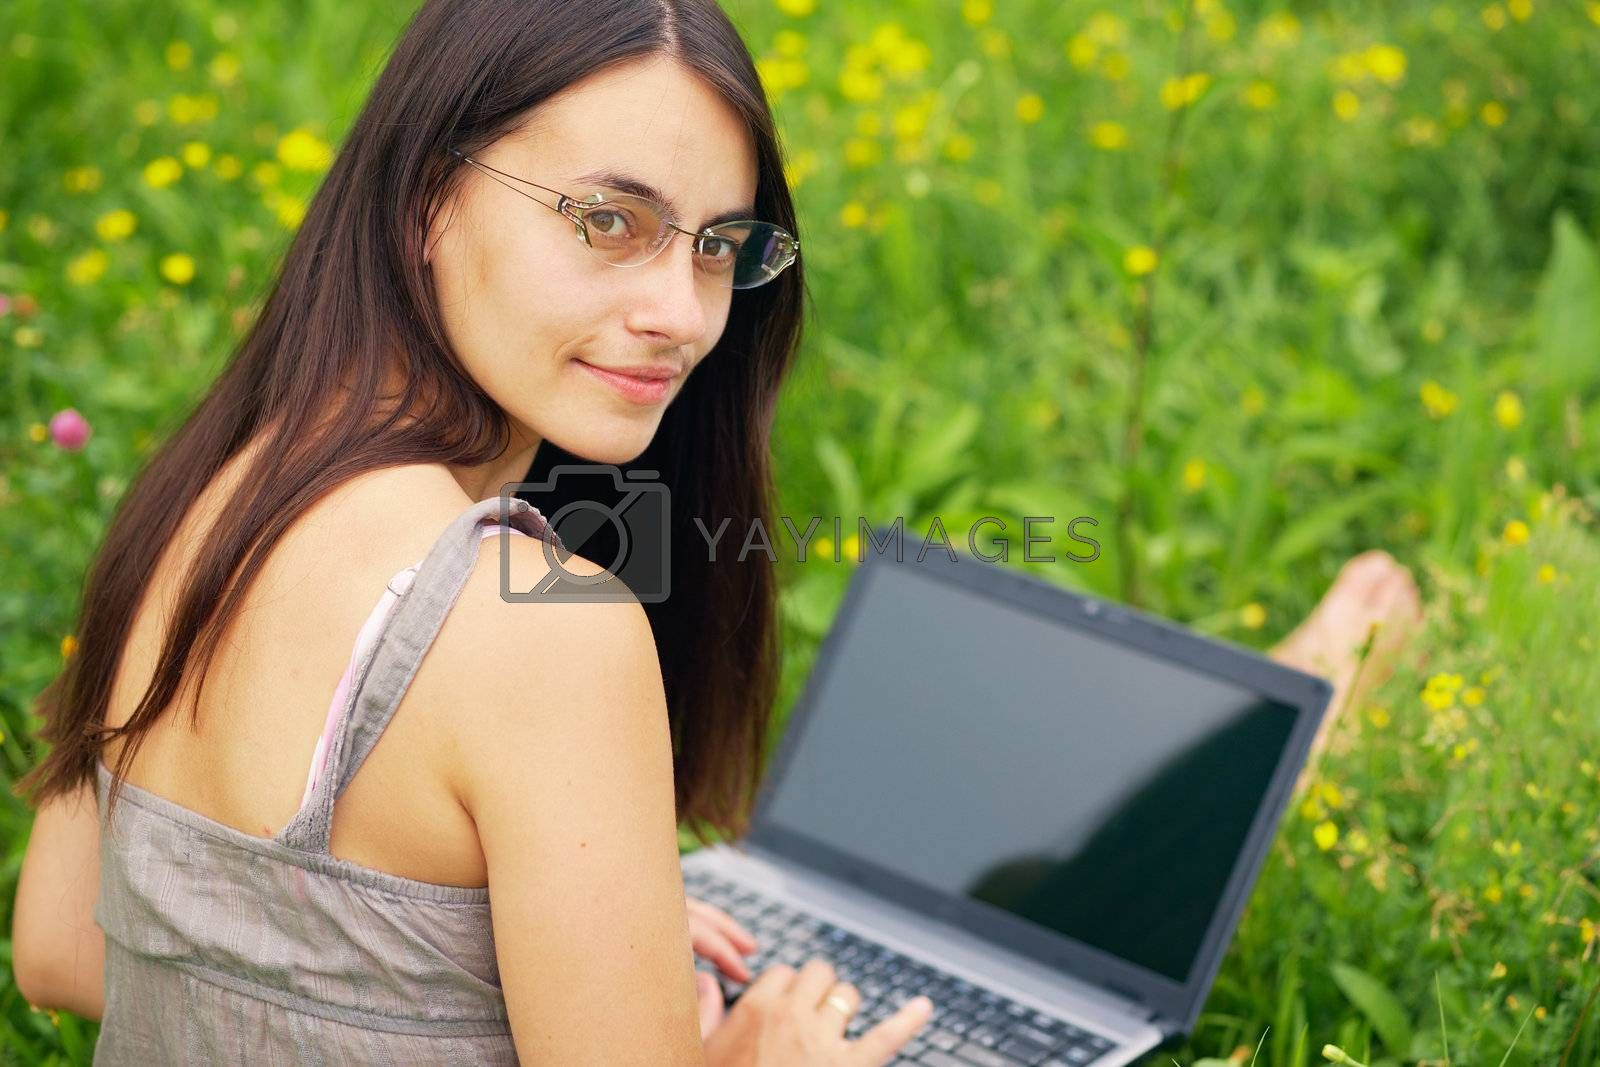 Close-up portrait of a woman with laptop outdoors